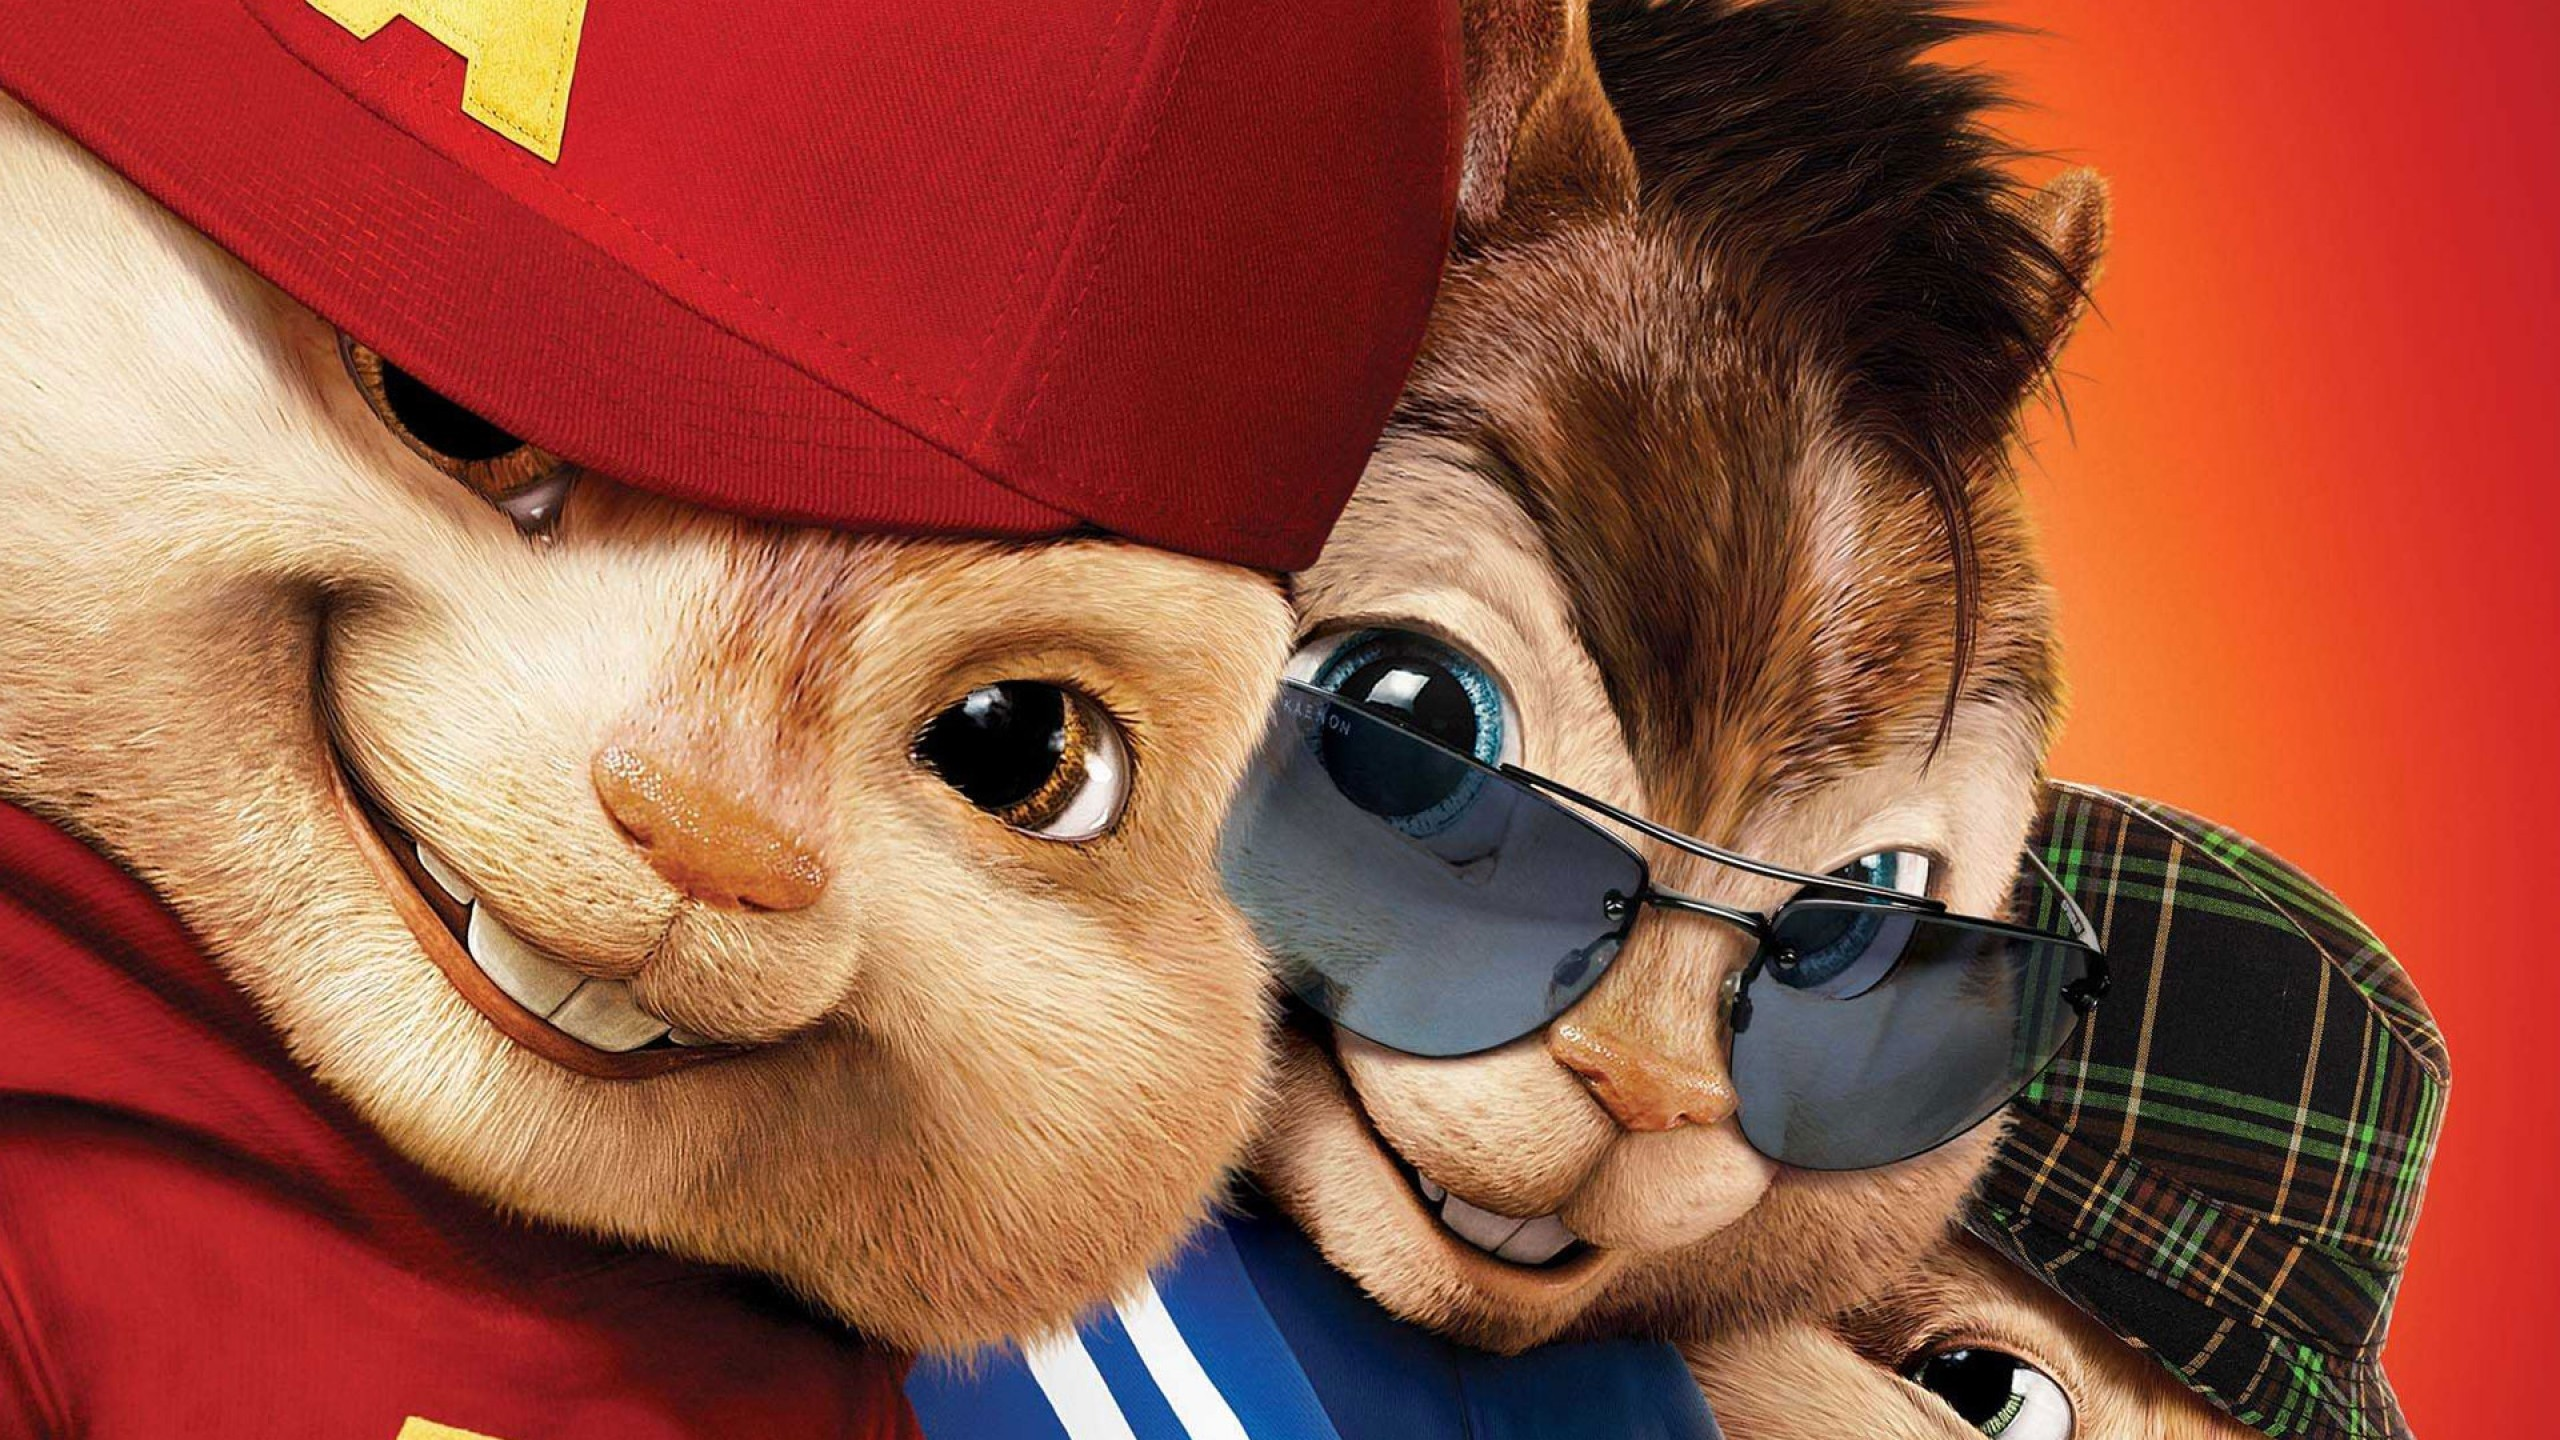 alvin and chipmunks wallpapers 2560x1440 1103420